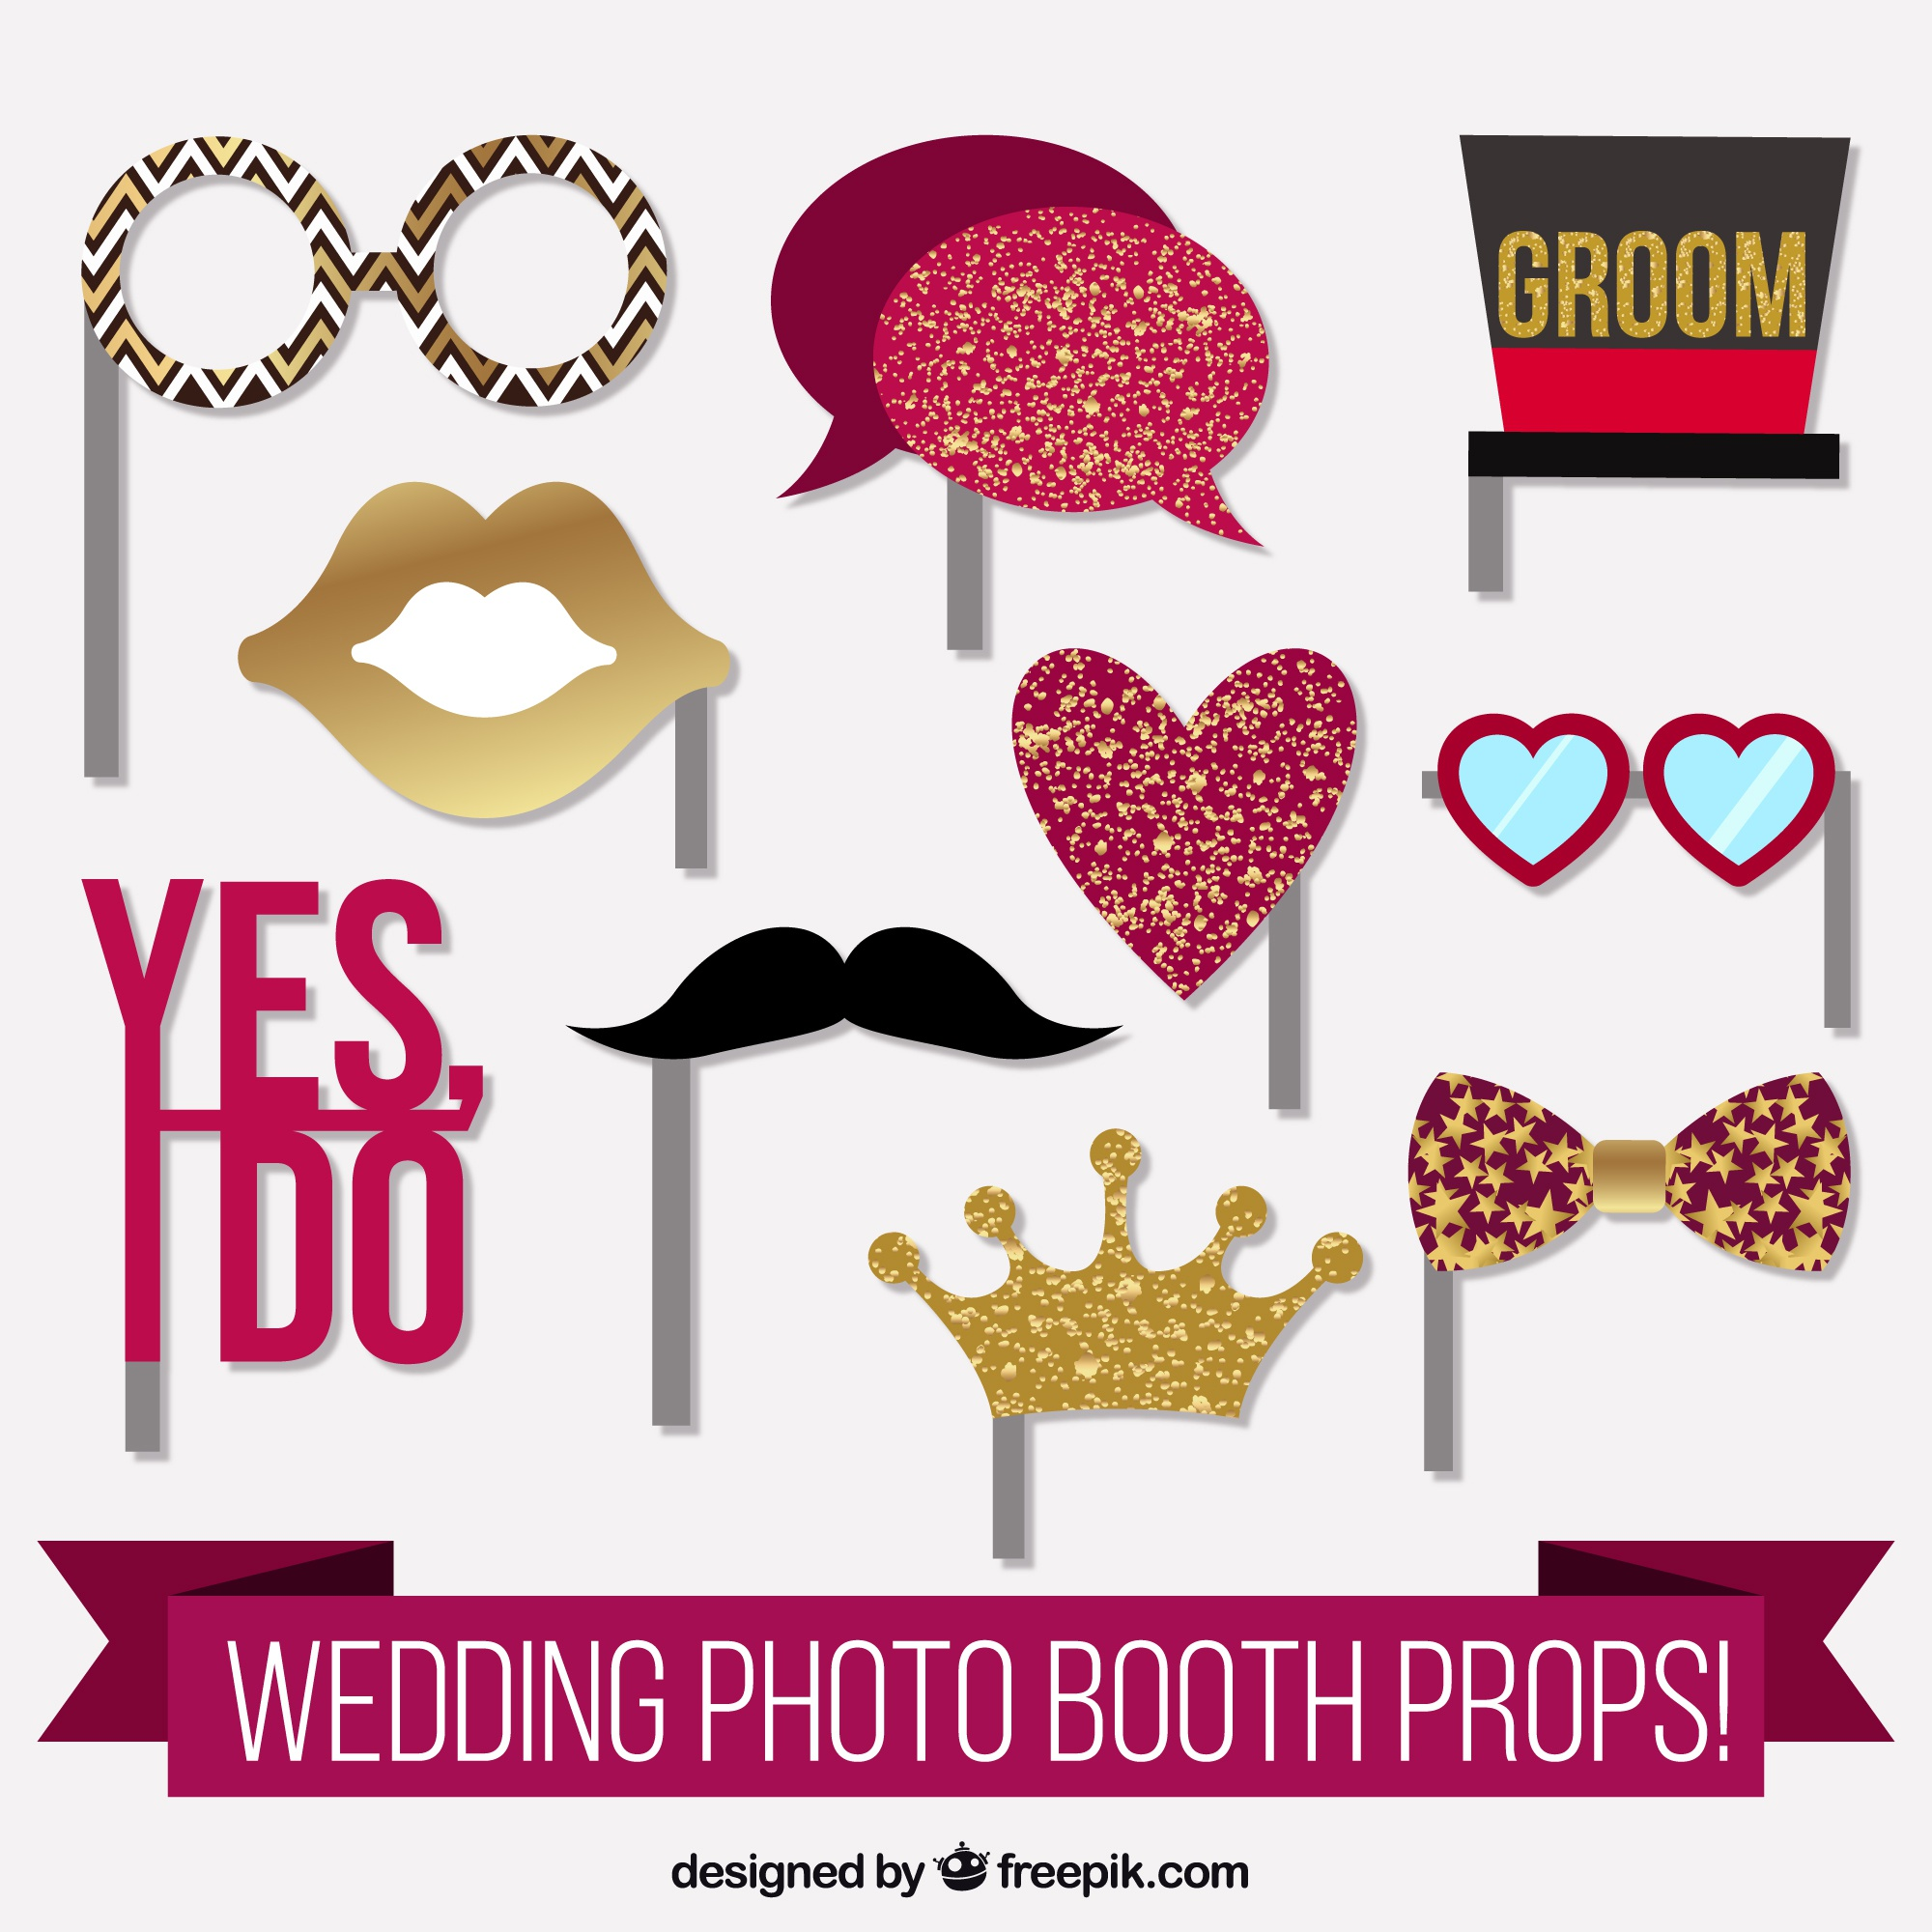 Fantastic elements for wedding photo booth